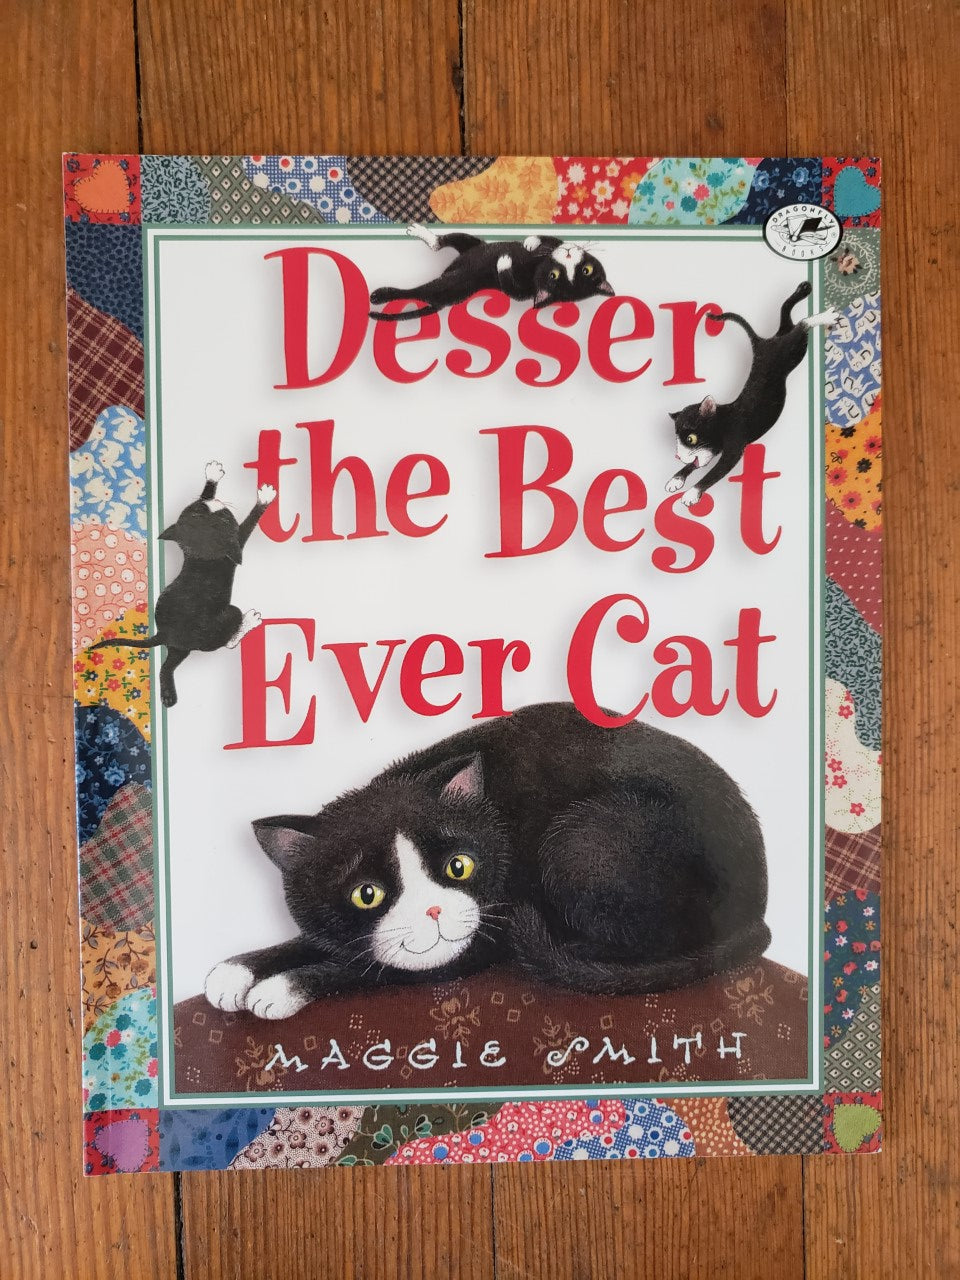 Desser the Best Ever Cat - By Maggie Smith - Hardback